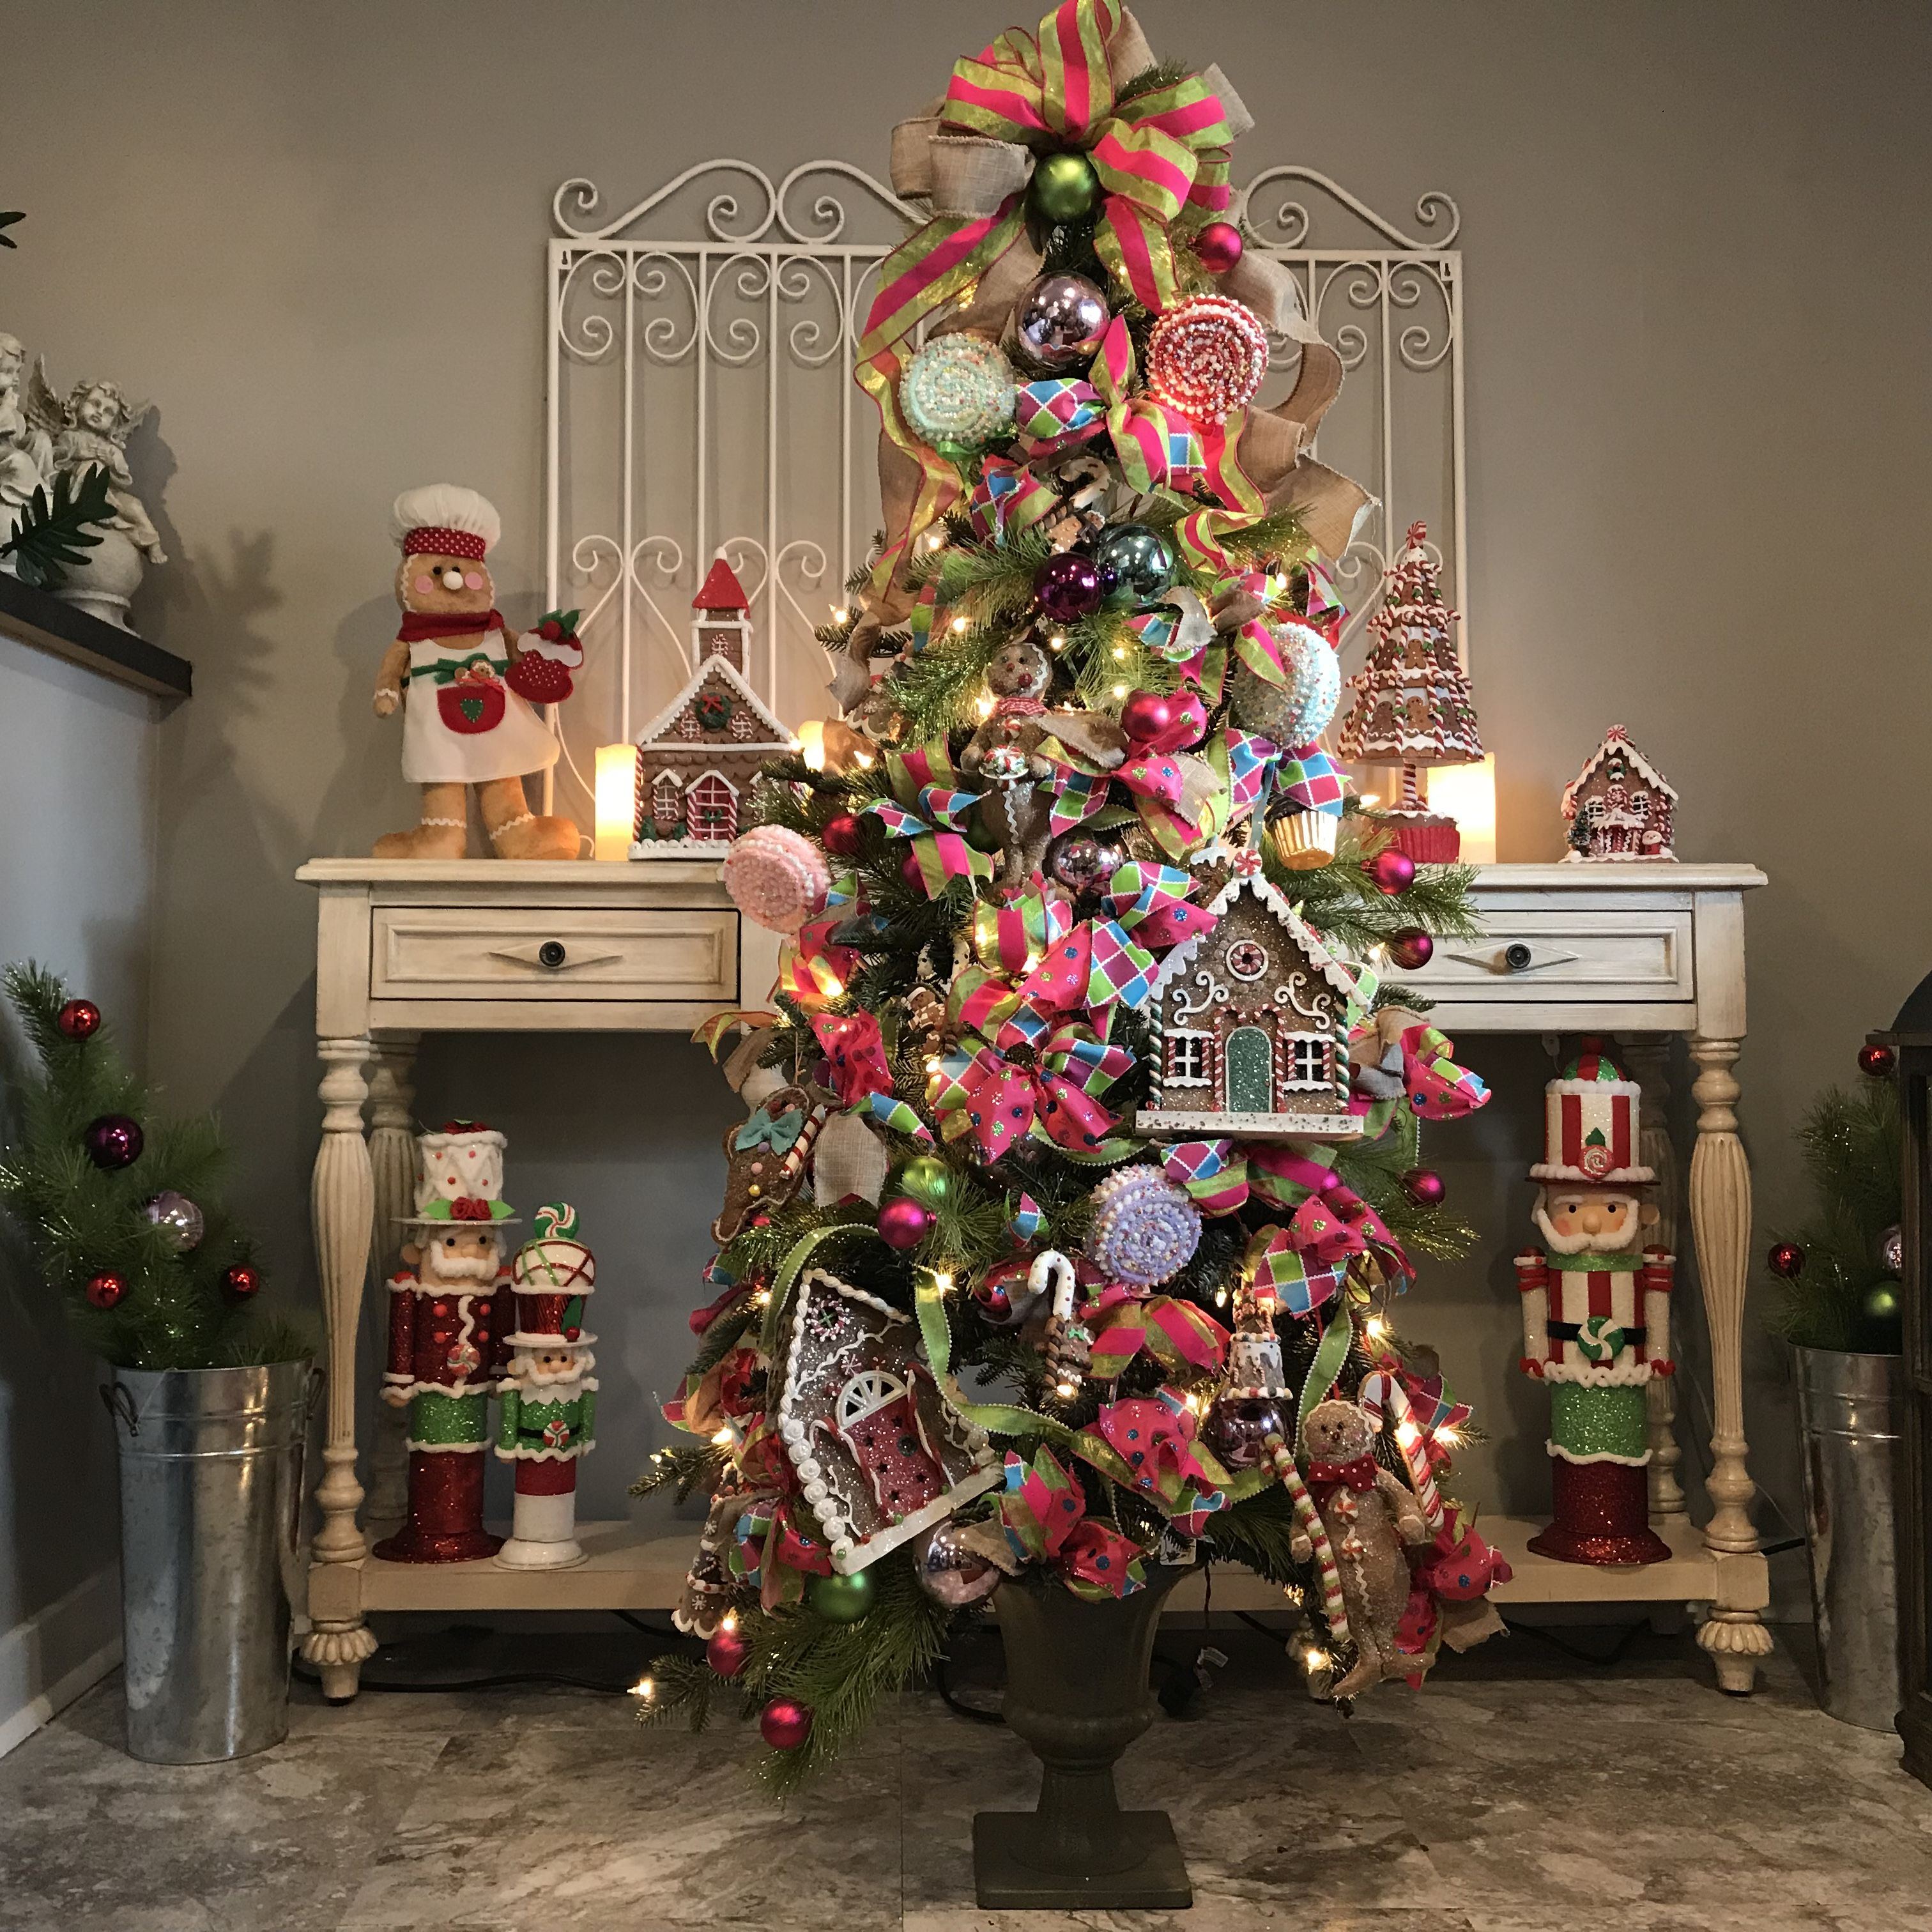 Candy Christmas Tree By Shelley B Candy Christmas Tree Christmas Christmas Tree Themes